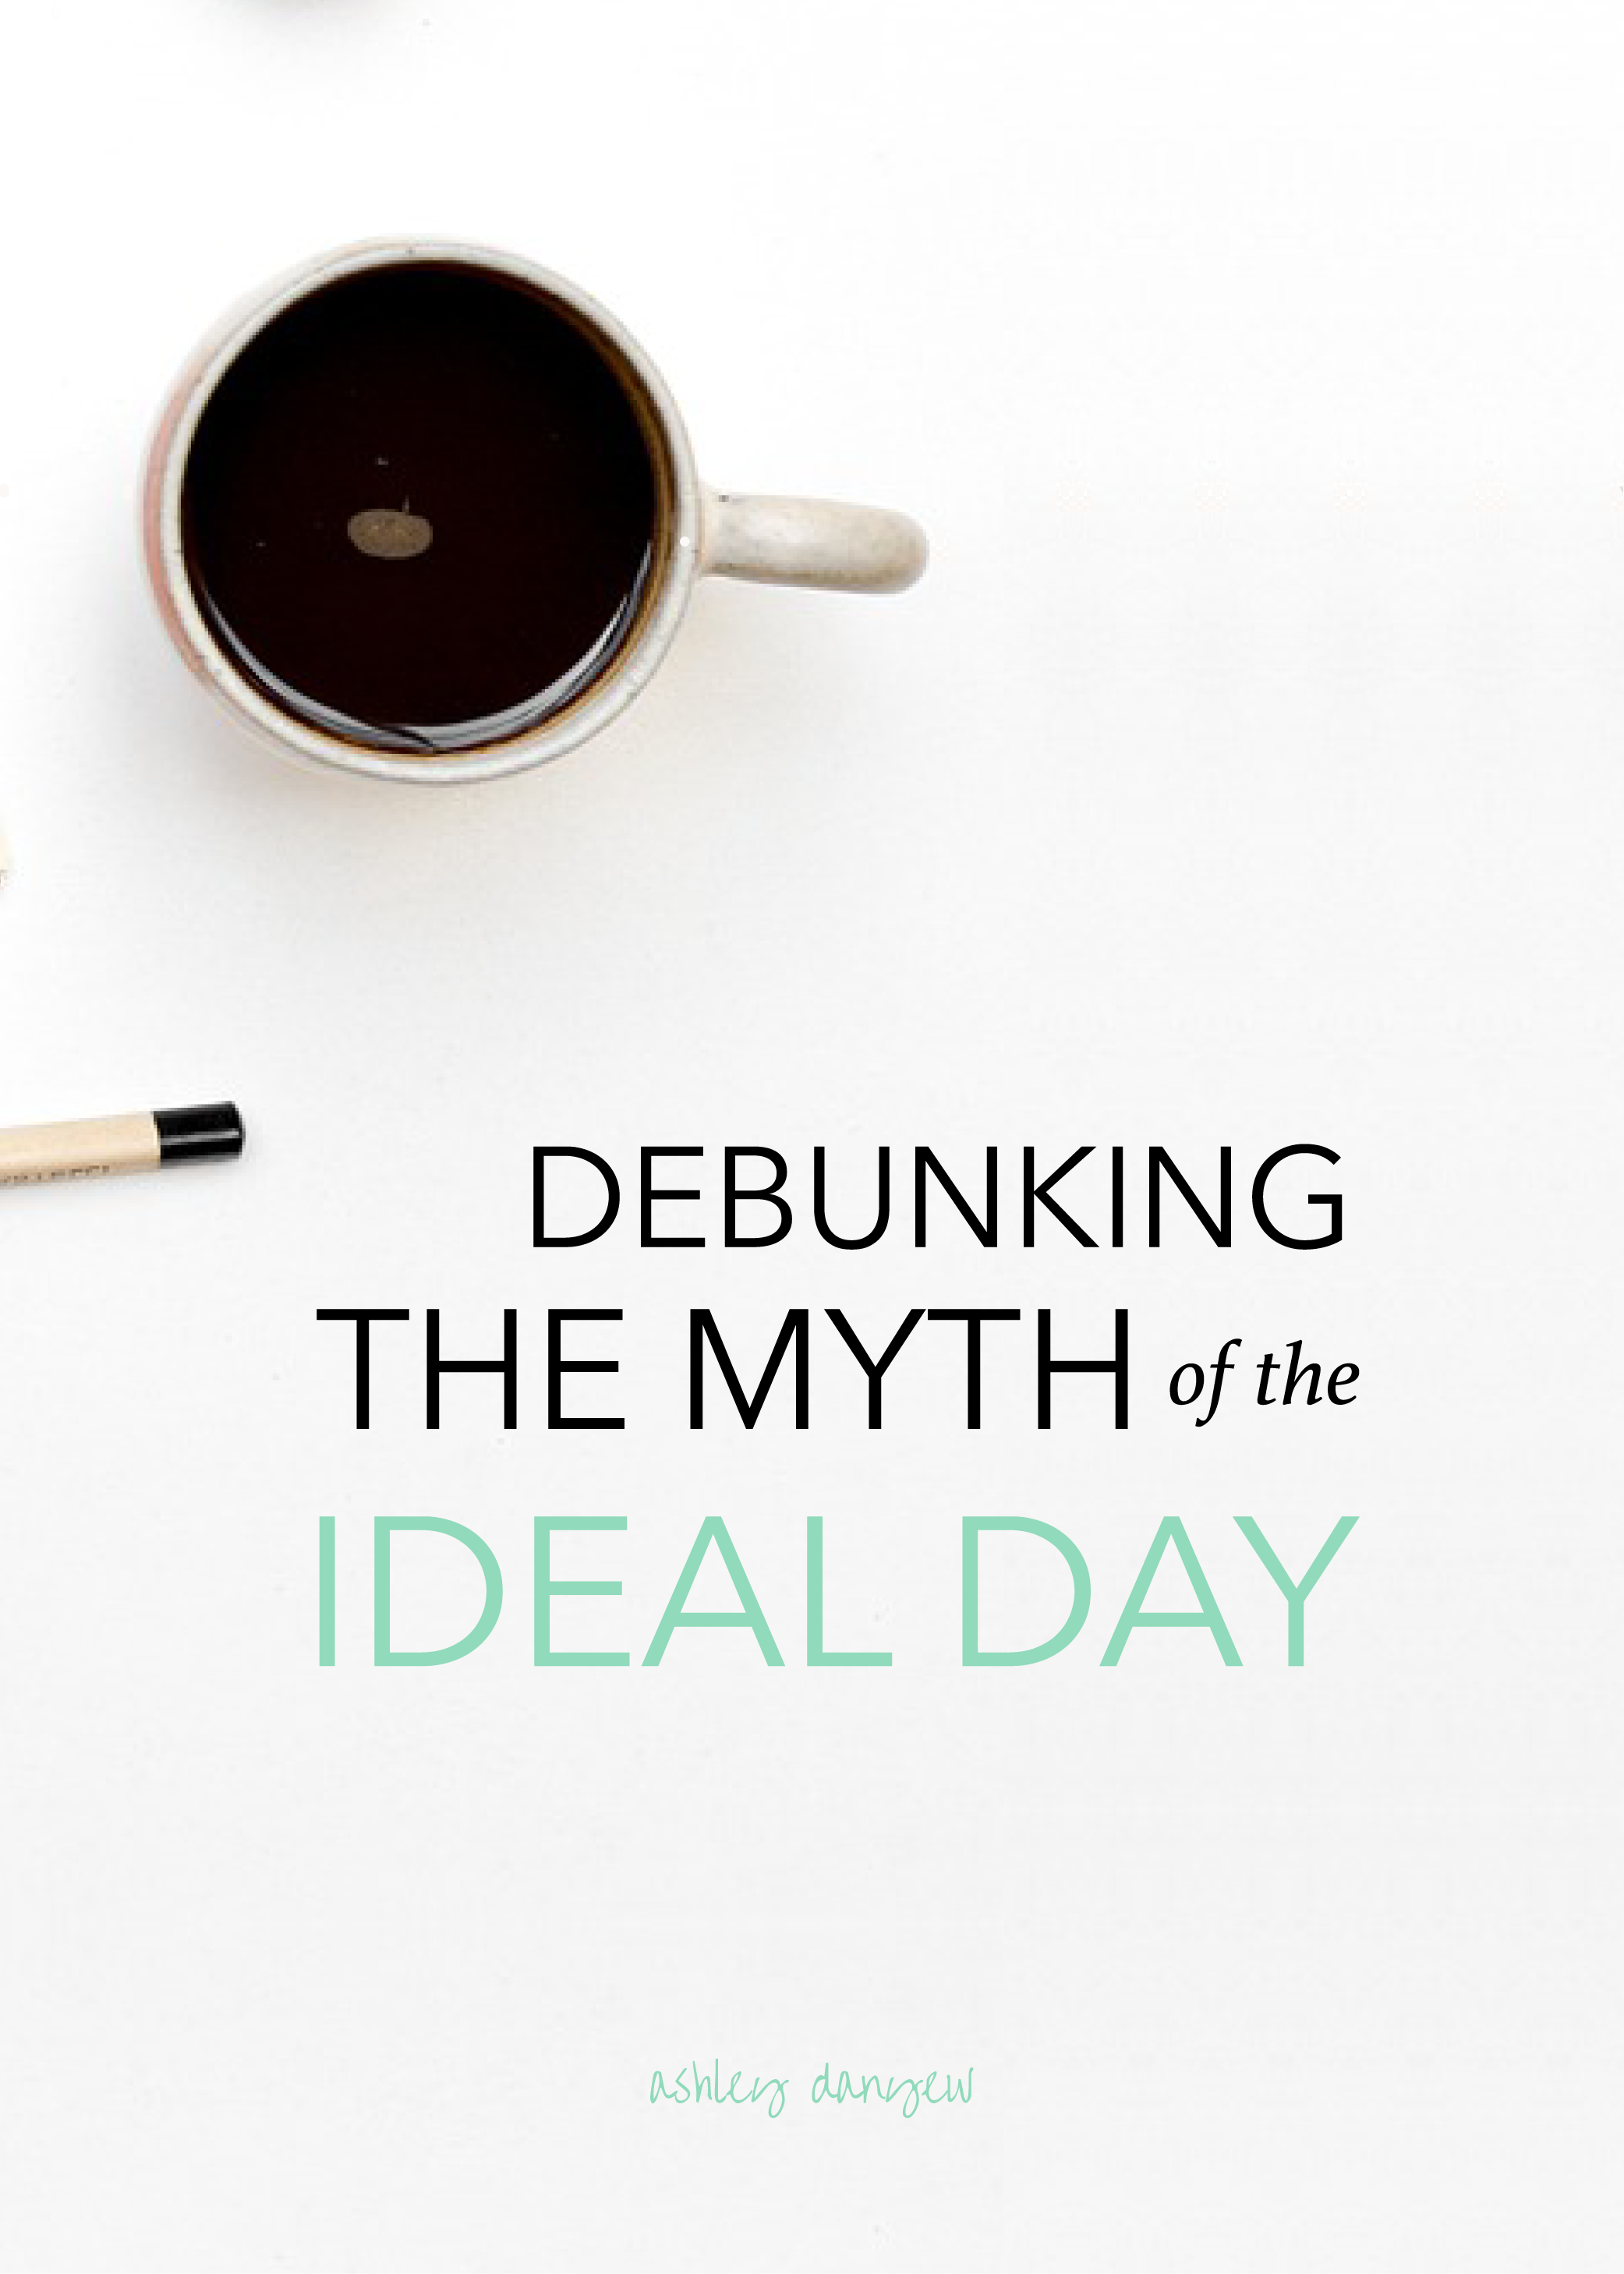 Debunking the myth of the ideal day: Four helpful resources | @ashleydanyew